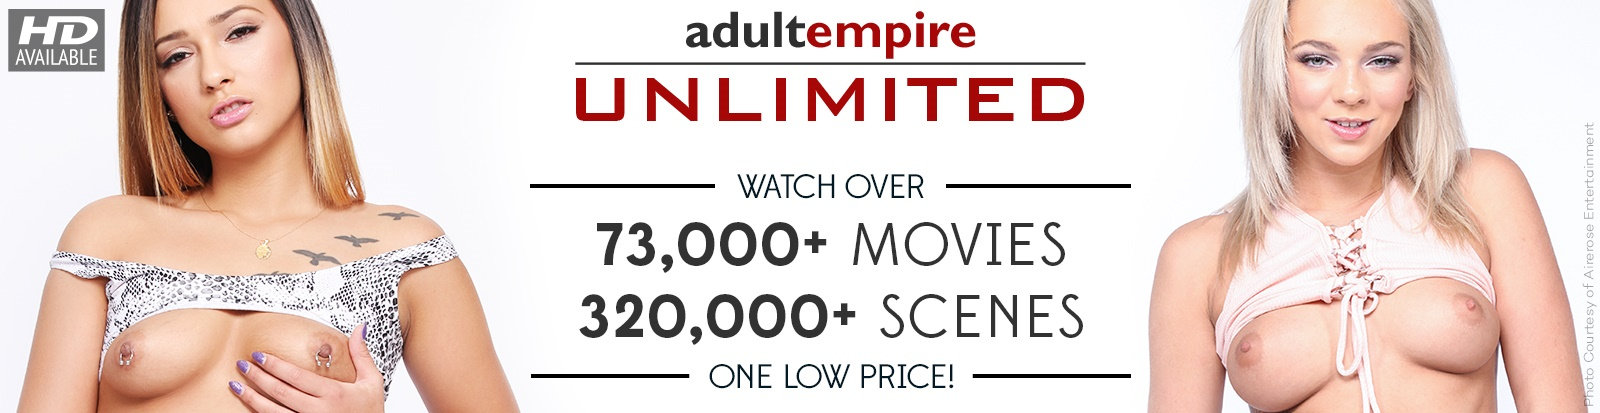 Join Adult Empire Unlimited and watch over 73,000 movies & 300,000 scenes! -Join now!